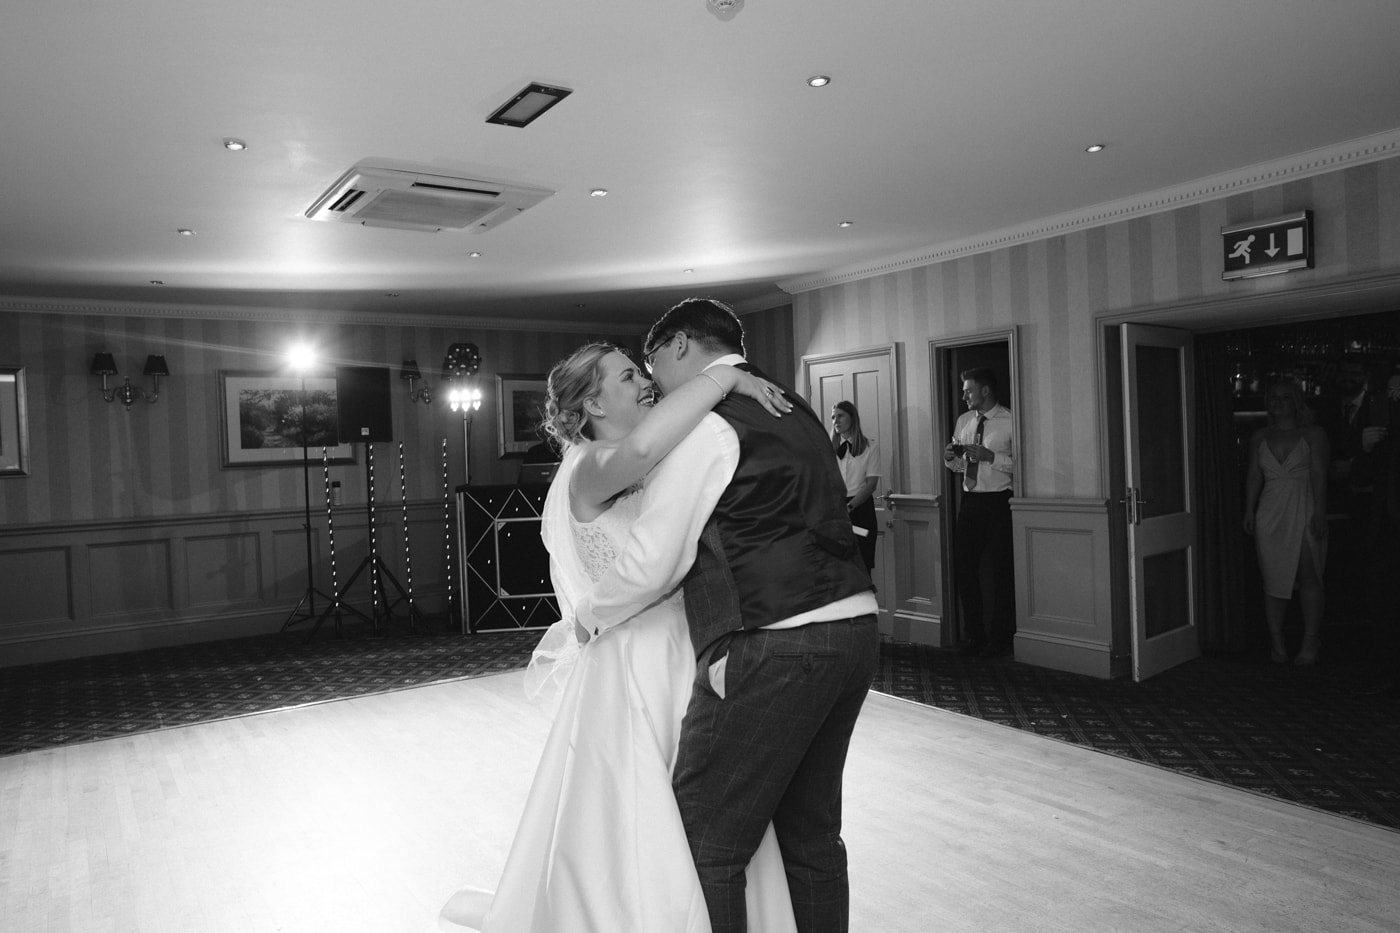 Bride and Groom Embraced Dancing Together at Roundthorn Country House